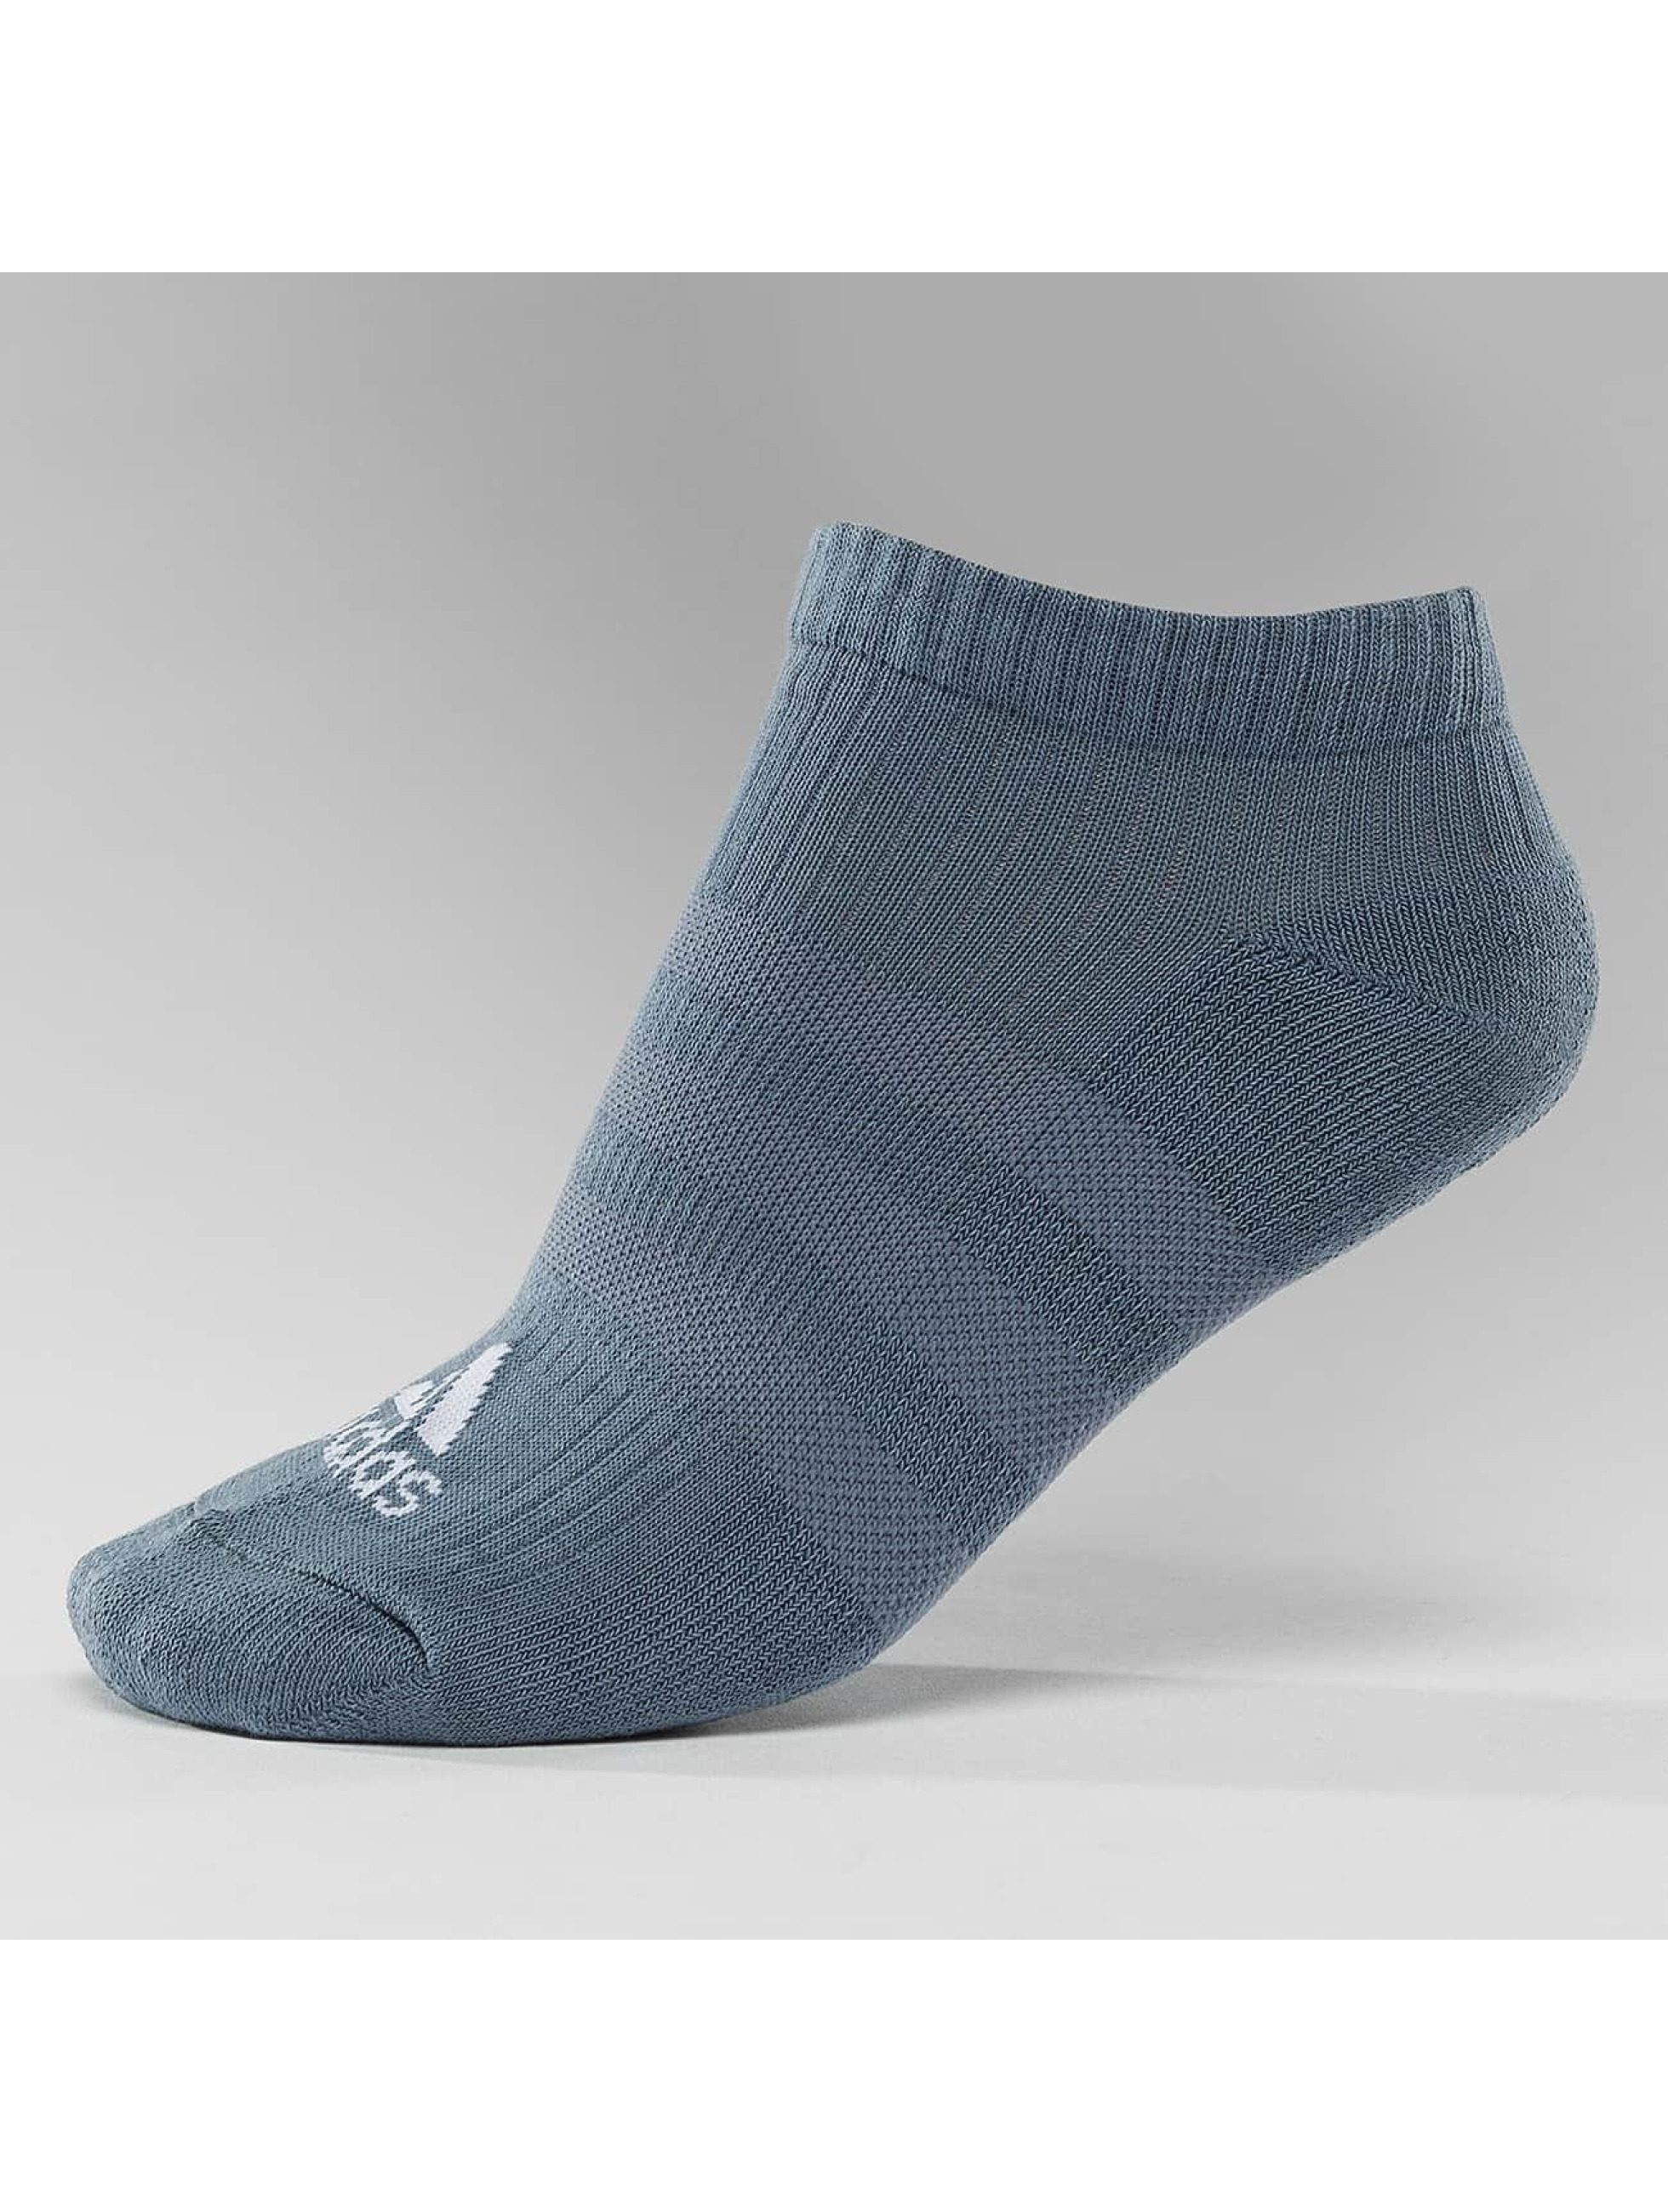 adidas originals Socken 3-Stripes Per n-s HC 3-Pairs weiß